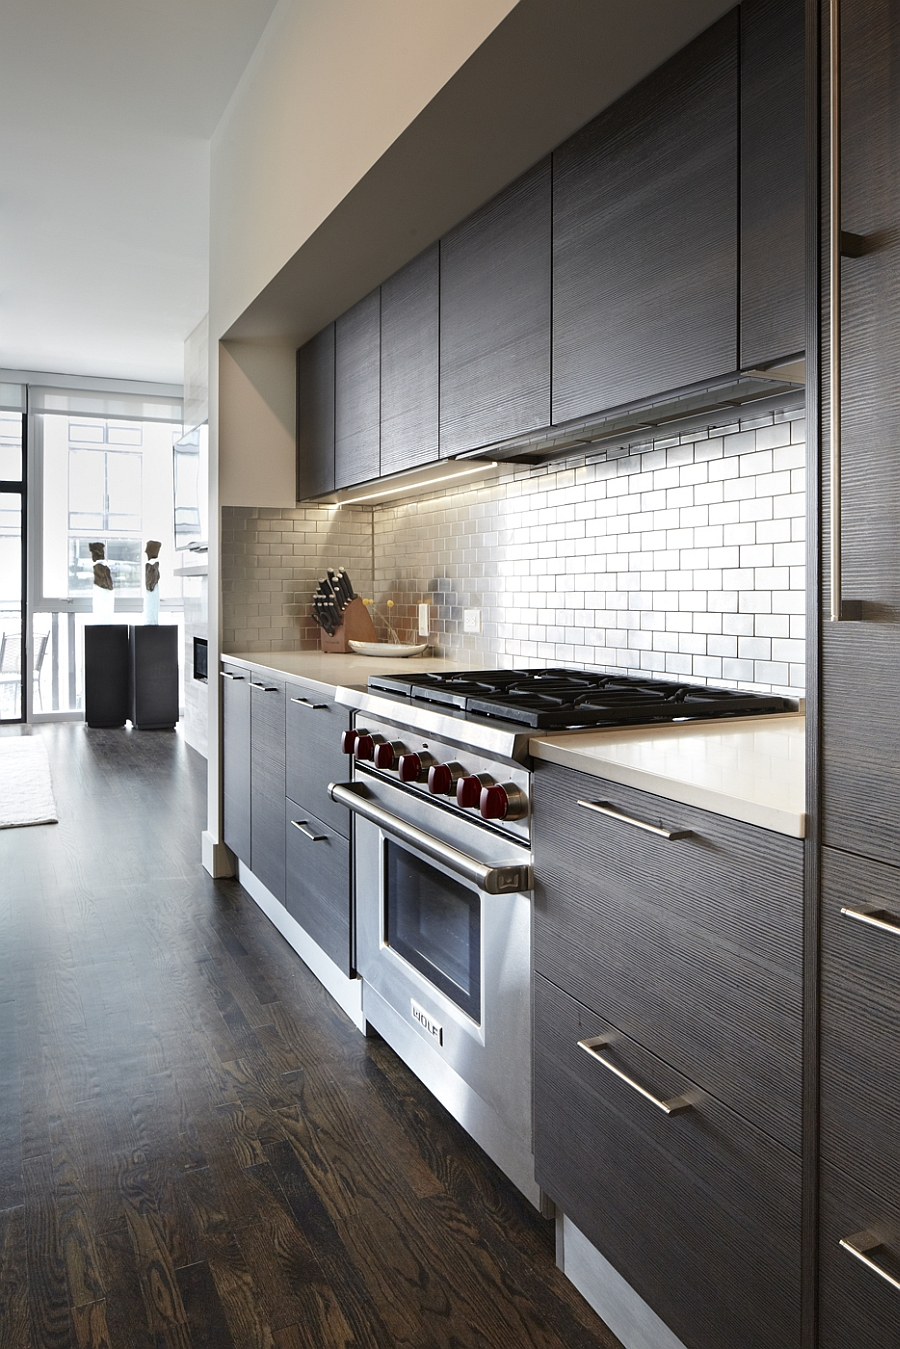 Modern, sleek kitchen of the Chicago home with tile backsplash